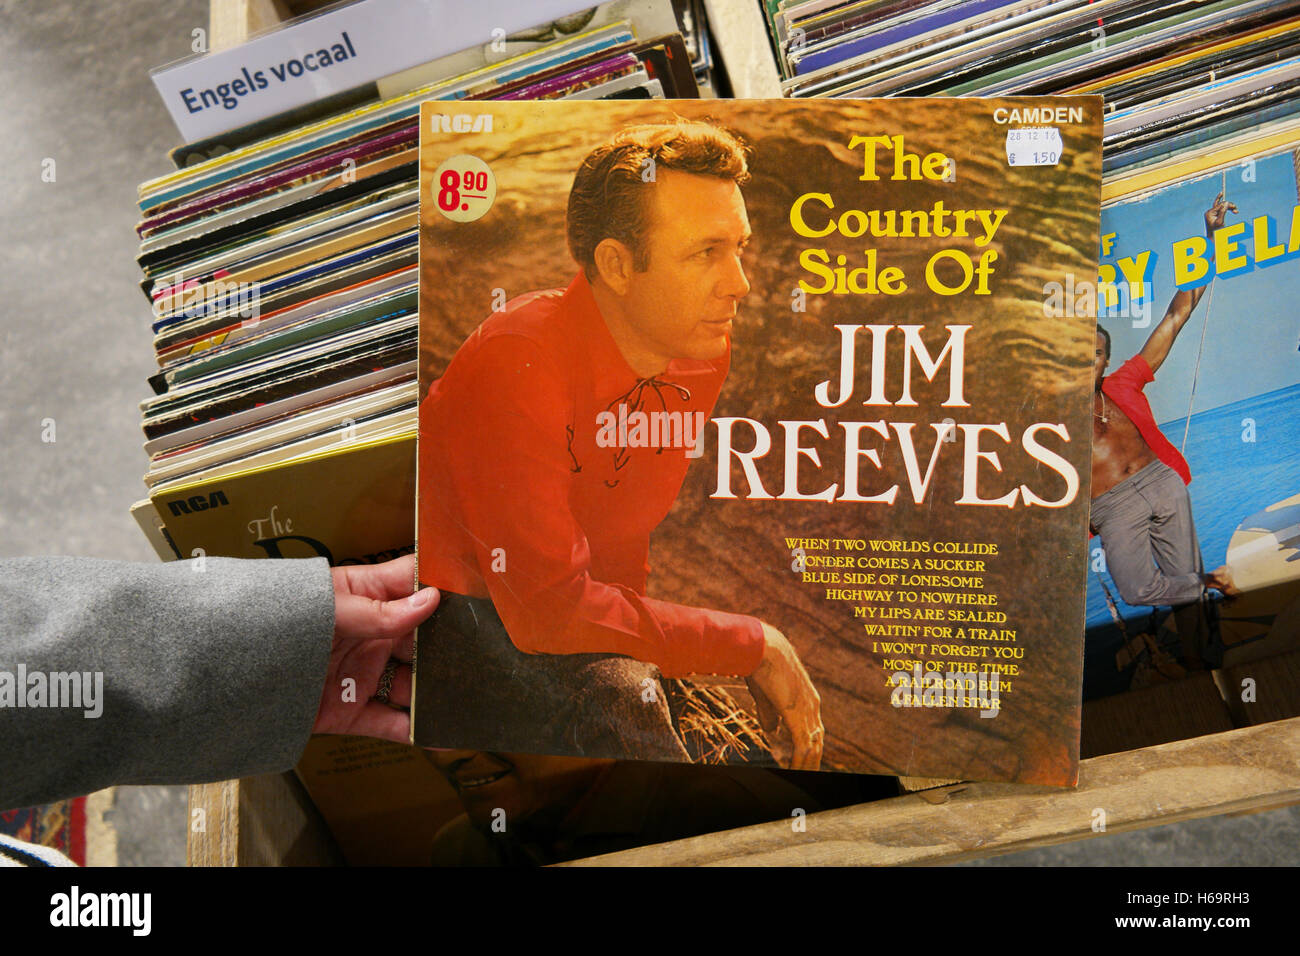 A 1962 Album: The Country Side Of Jim Reeves - Stock Image